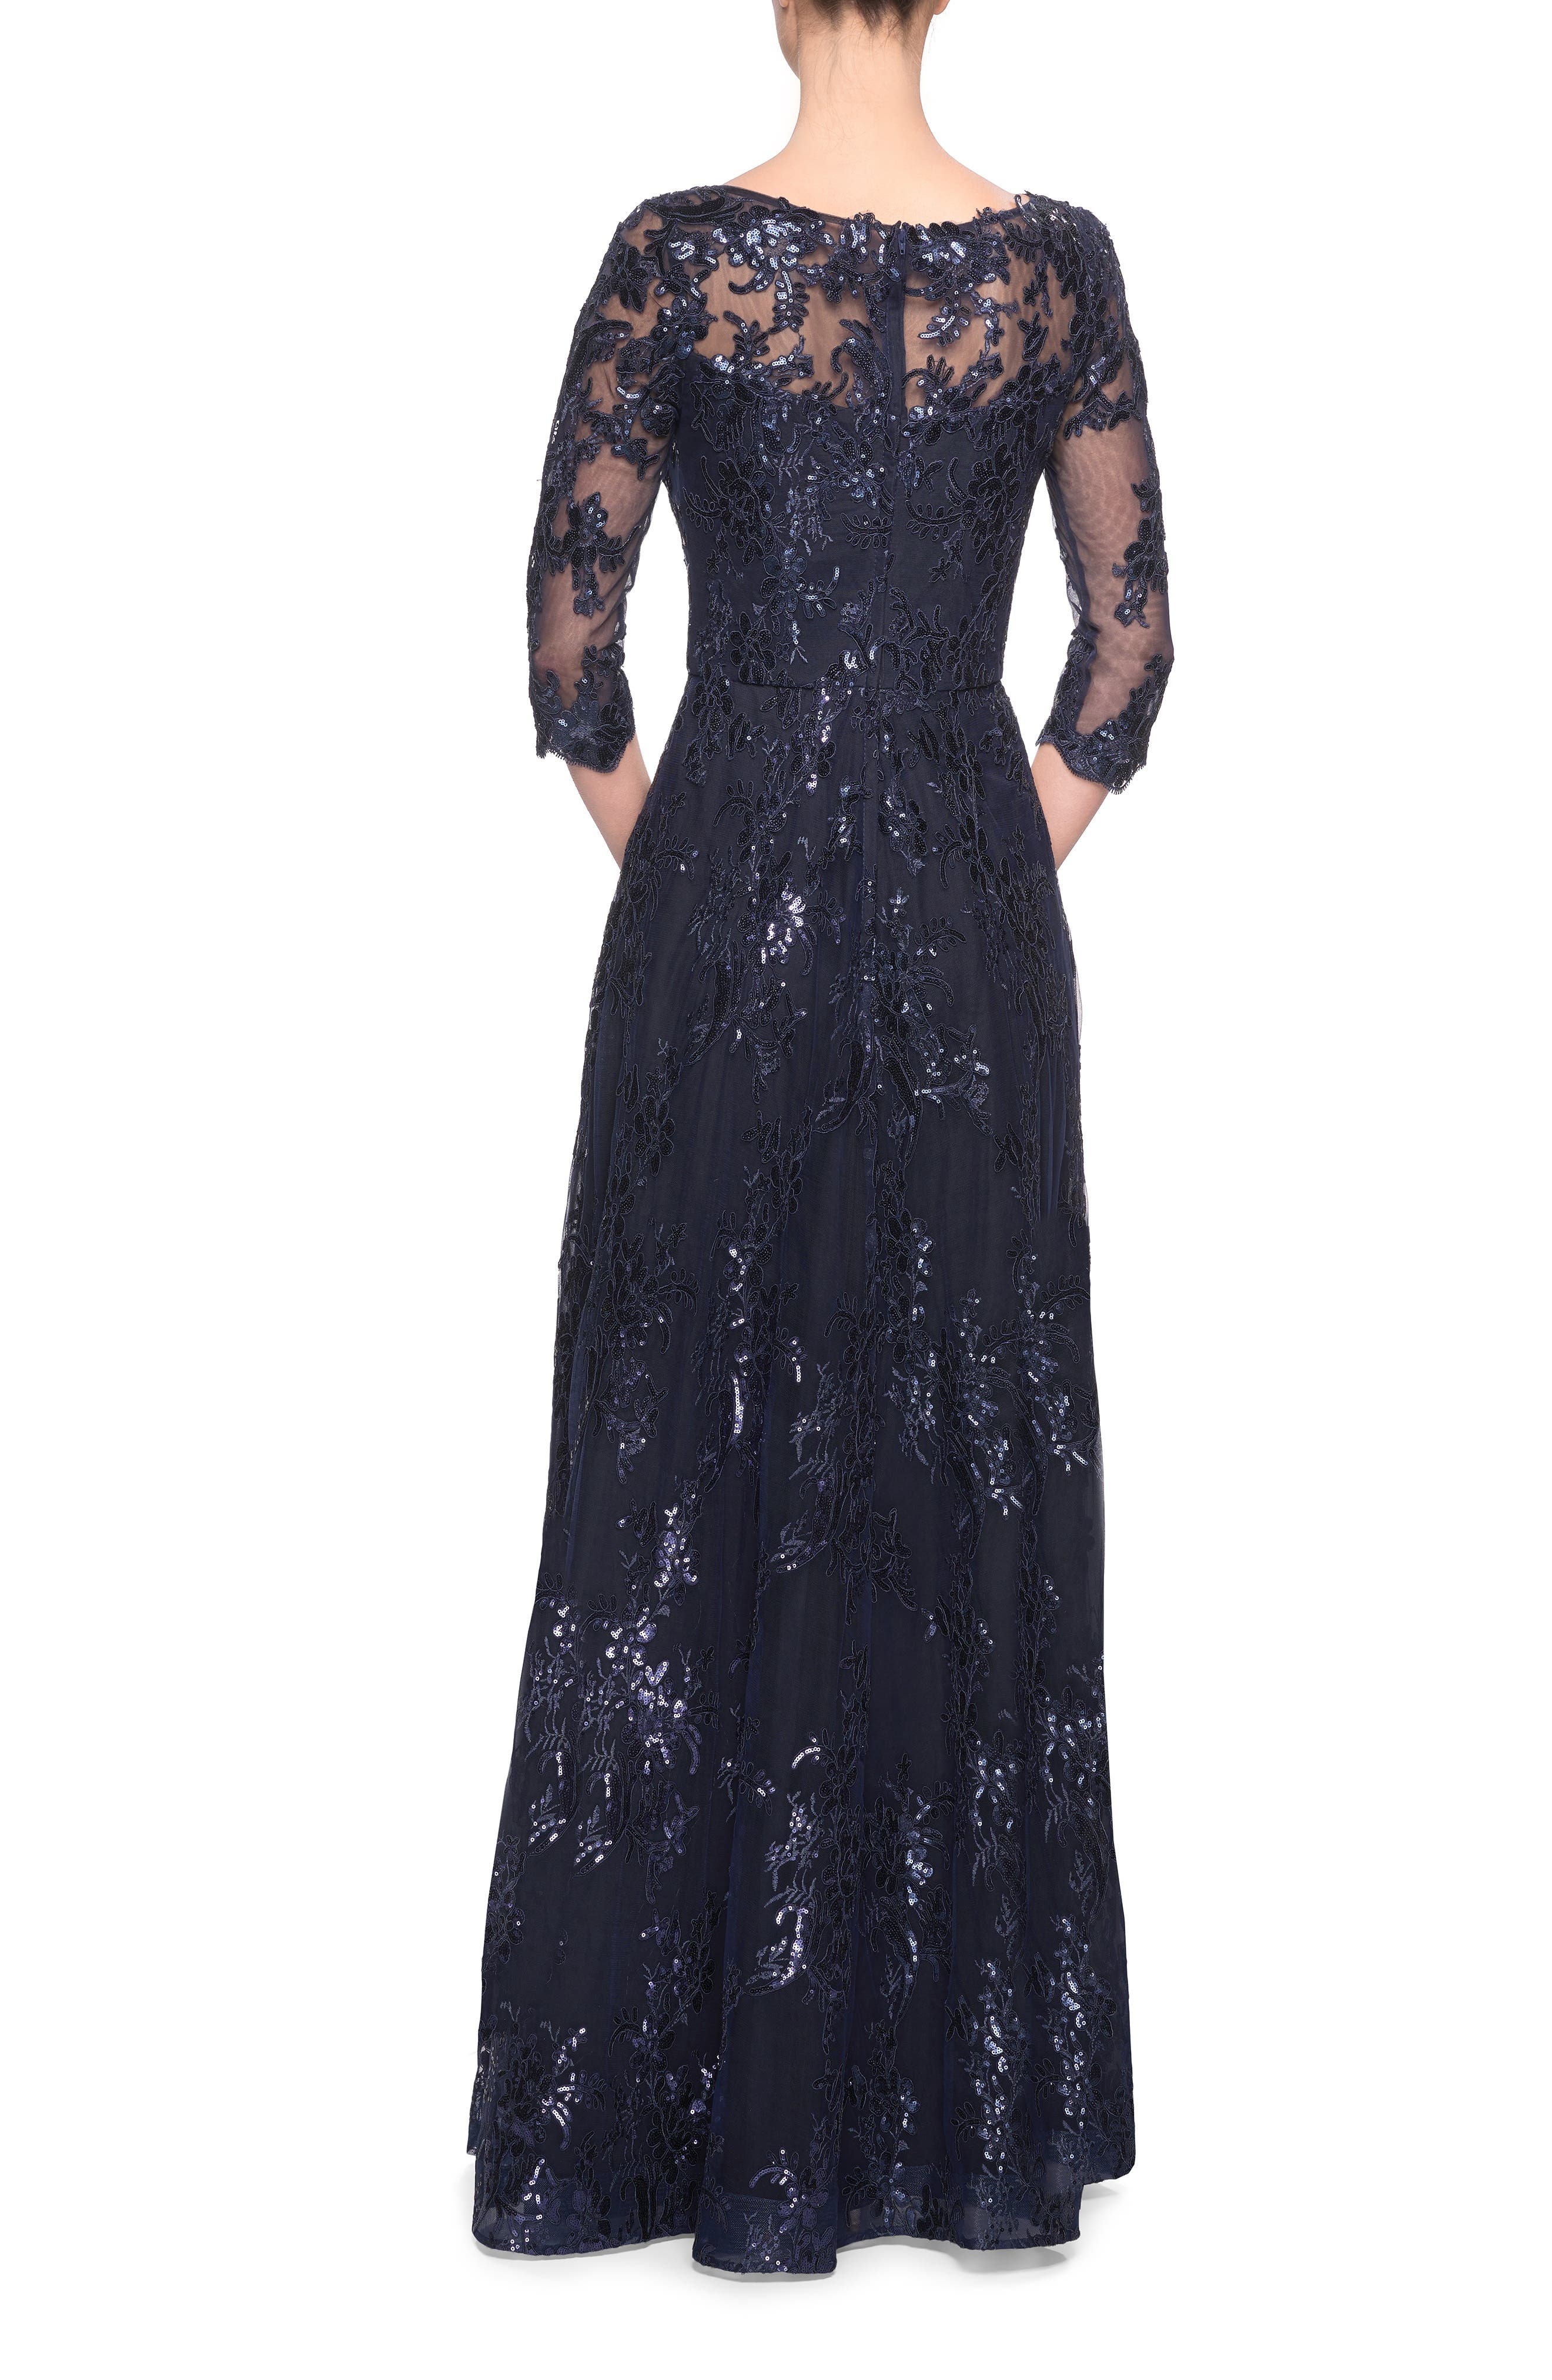 Shimmer Sequin Lace Evening Dress,                             Alternate thumbnail 2, color,                             NAVY